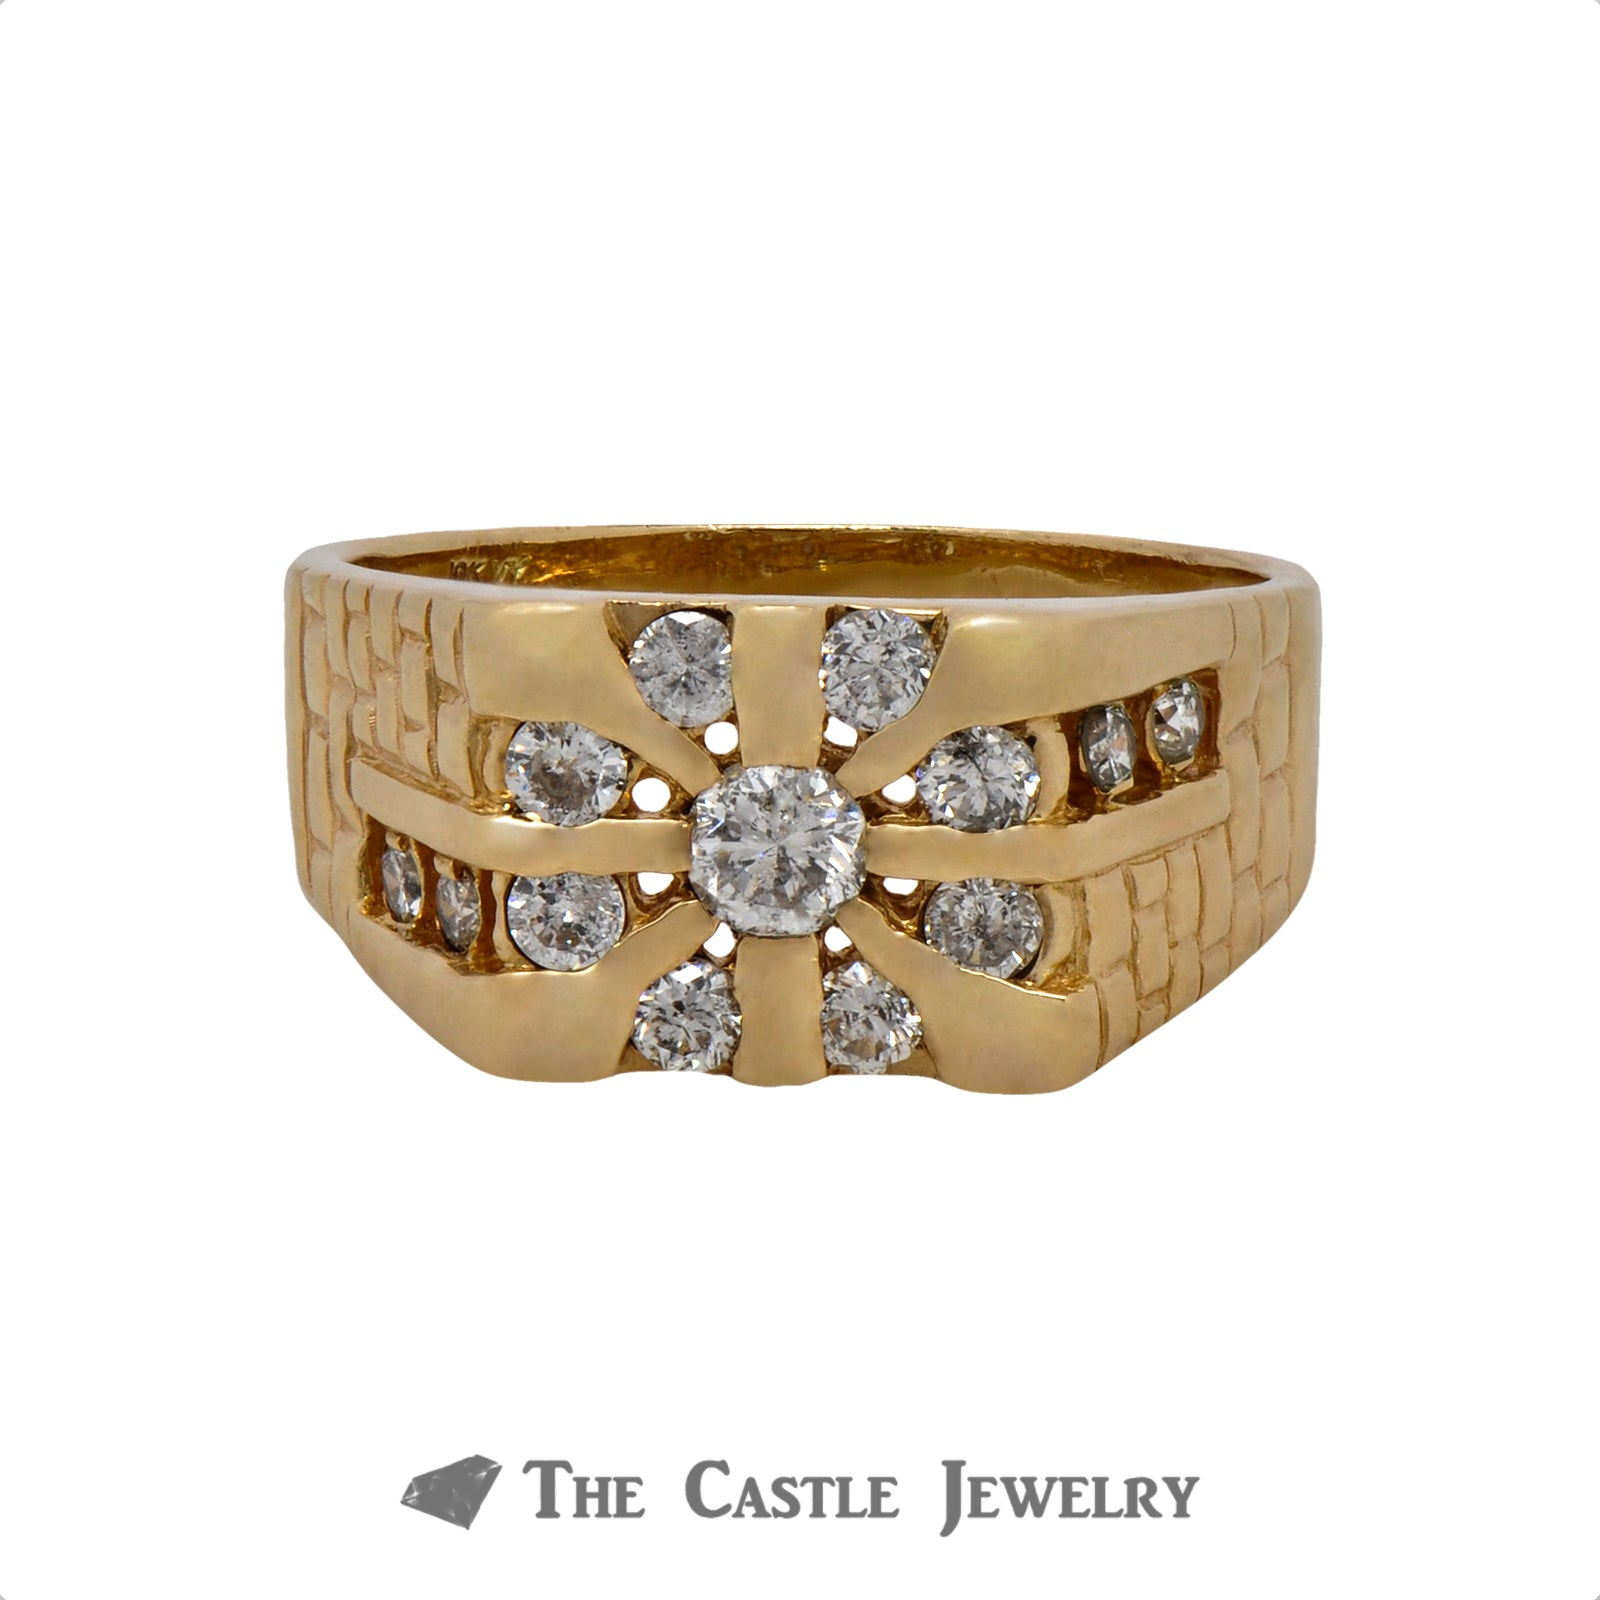 1cttw Gent's Sunburst Style Diamond Ring Crafted in 10k Yellow Gold